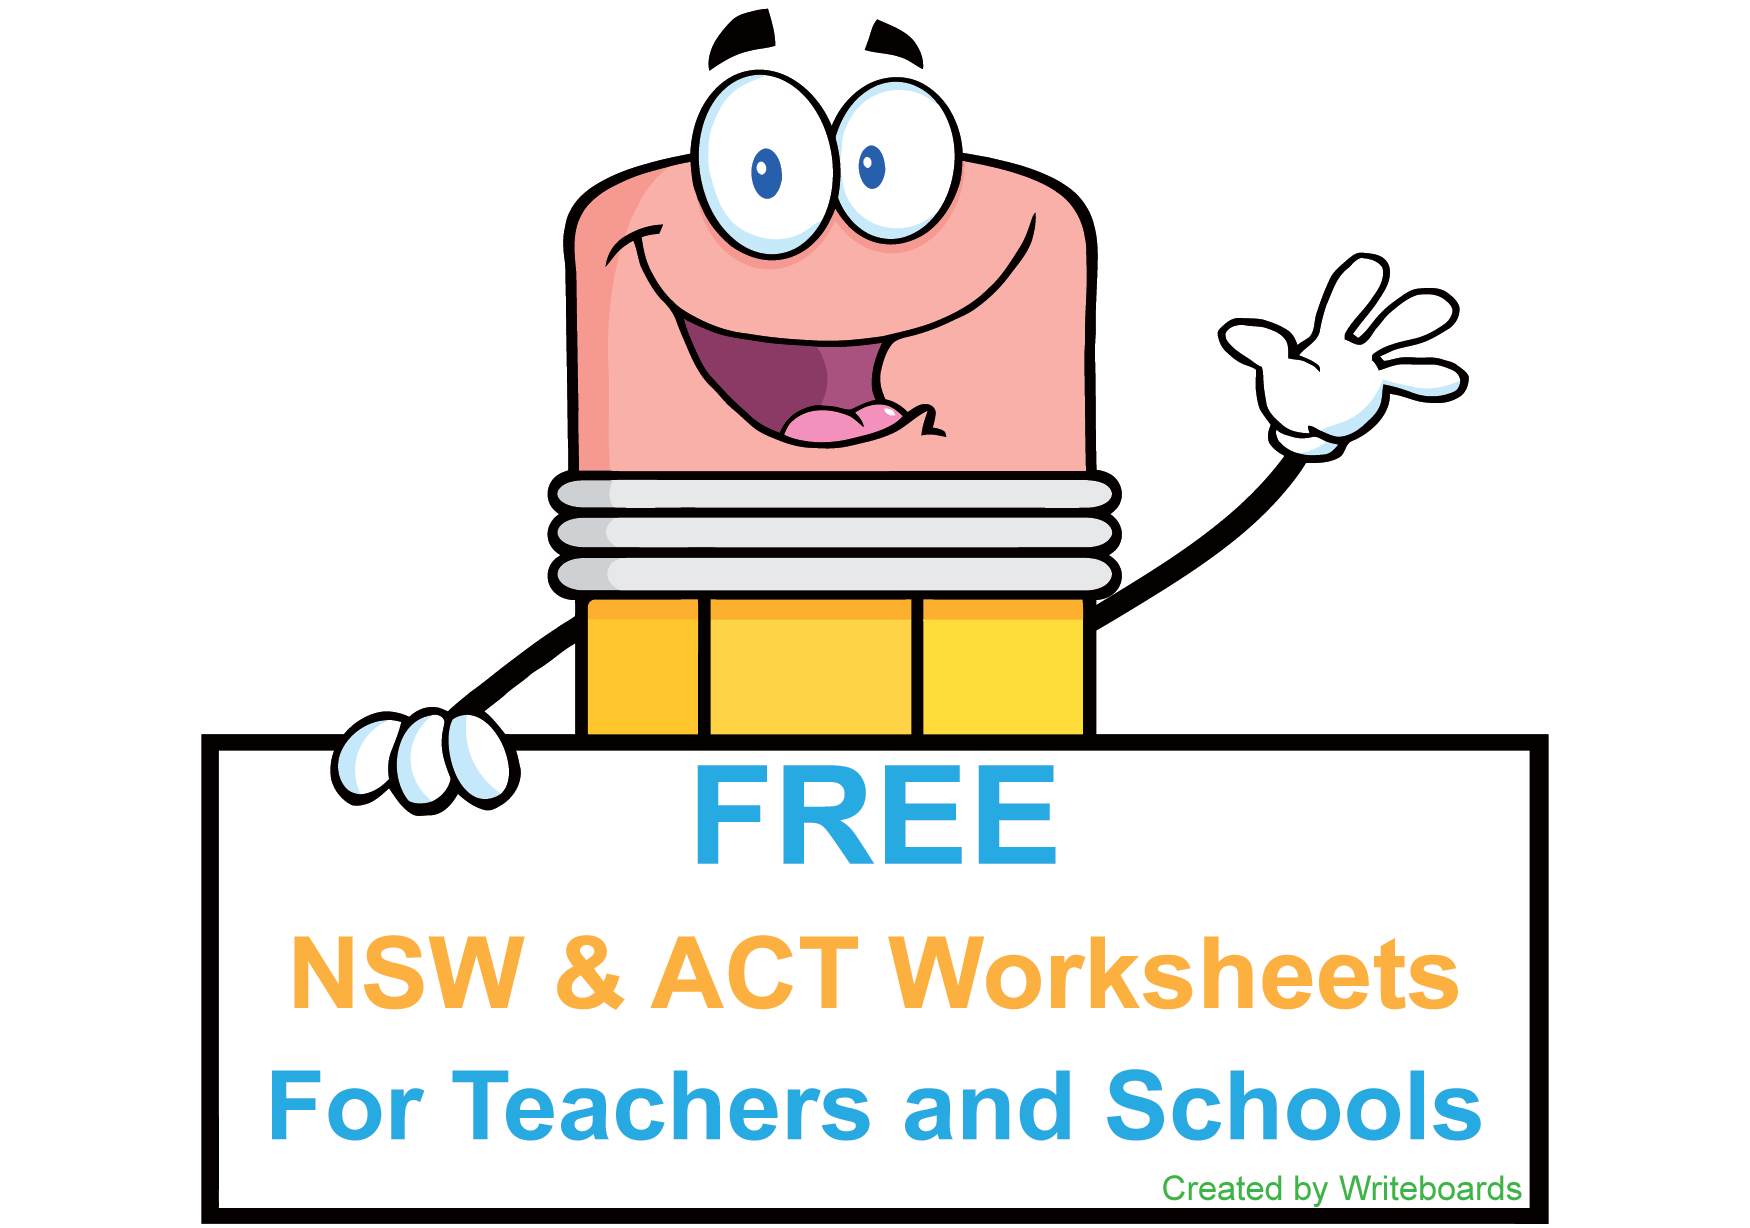 free nsw foundation font handwriting worksheets for teachers and schoo. Black Bedroom Furniture Sets. Home Design Ideas